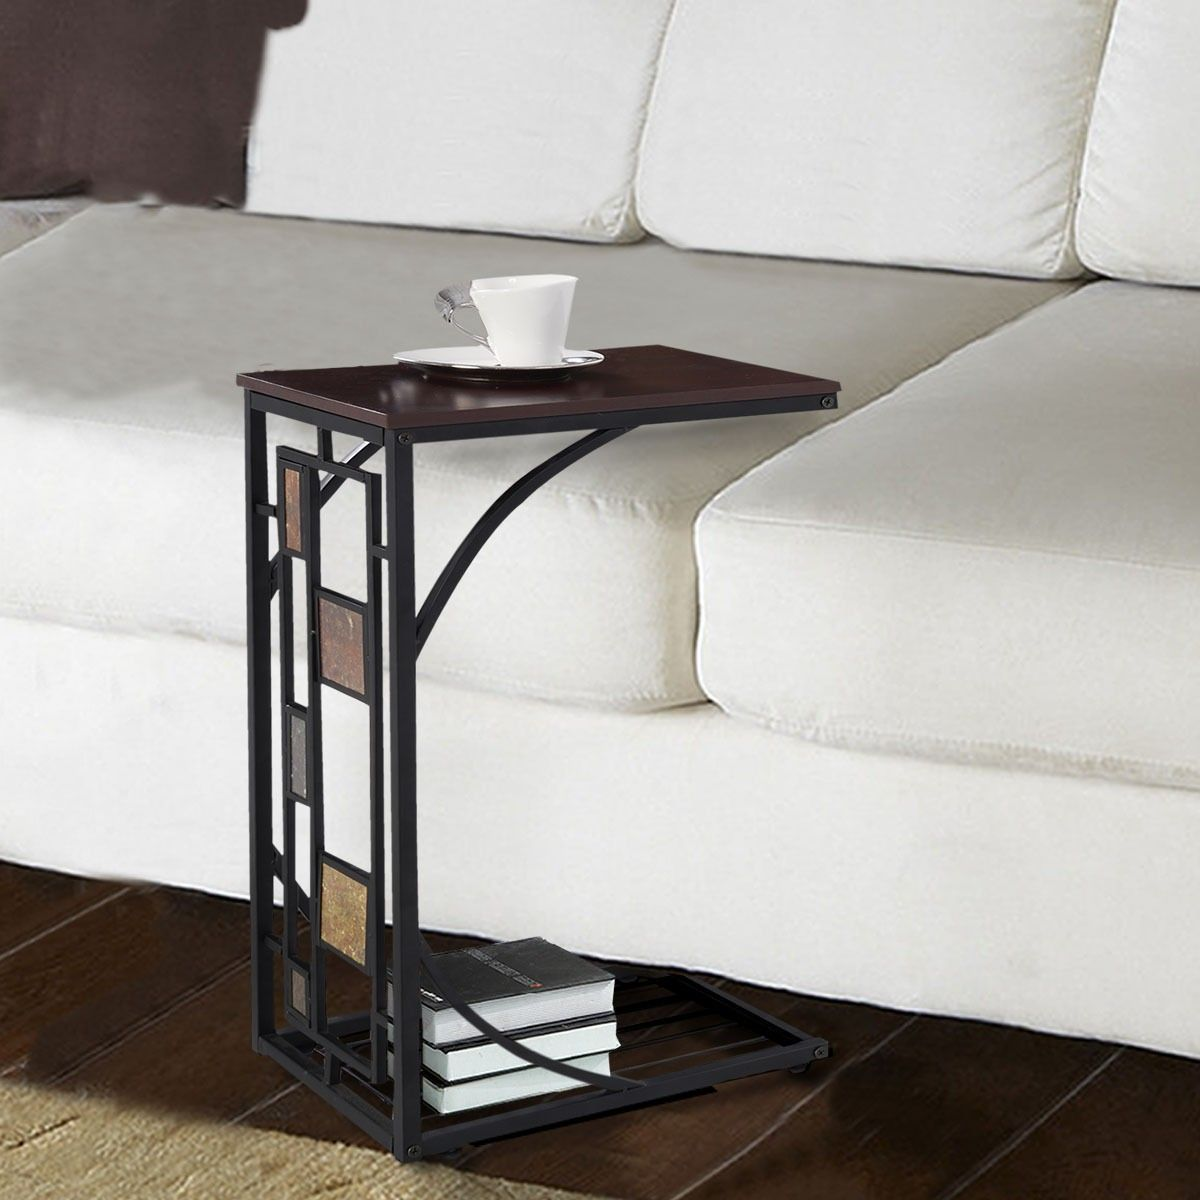 result for stained glass end tables home ott table lazy boy website target white dresser ashley furniture triangle stickley syracuse modern industrial bedside bedroom sofa dining